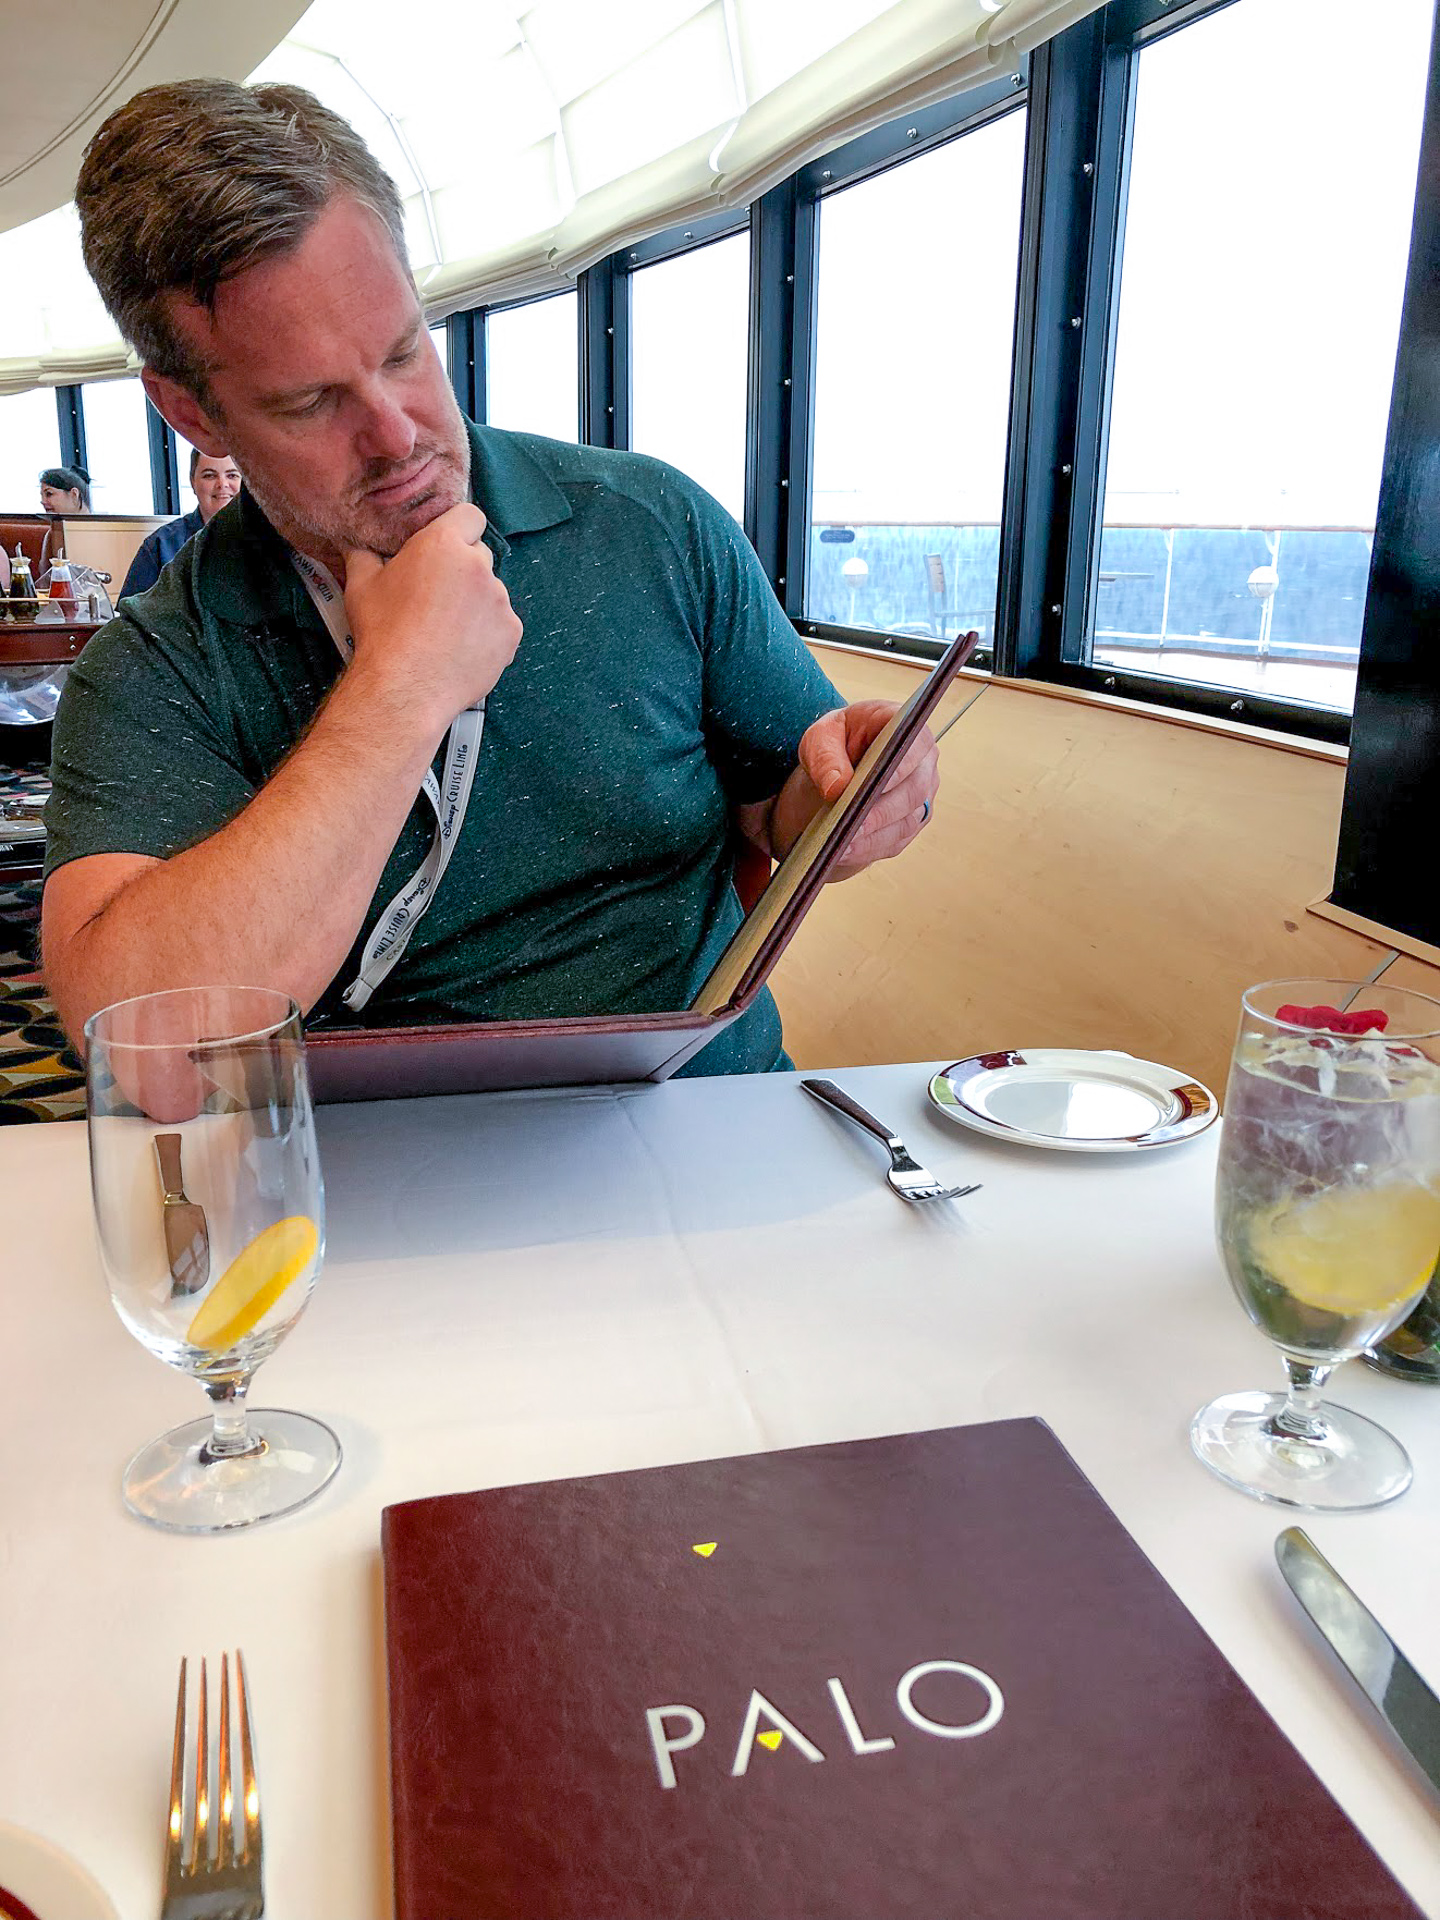 Man looking at the Palo dinner menu on the Disney Dream